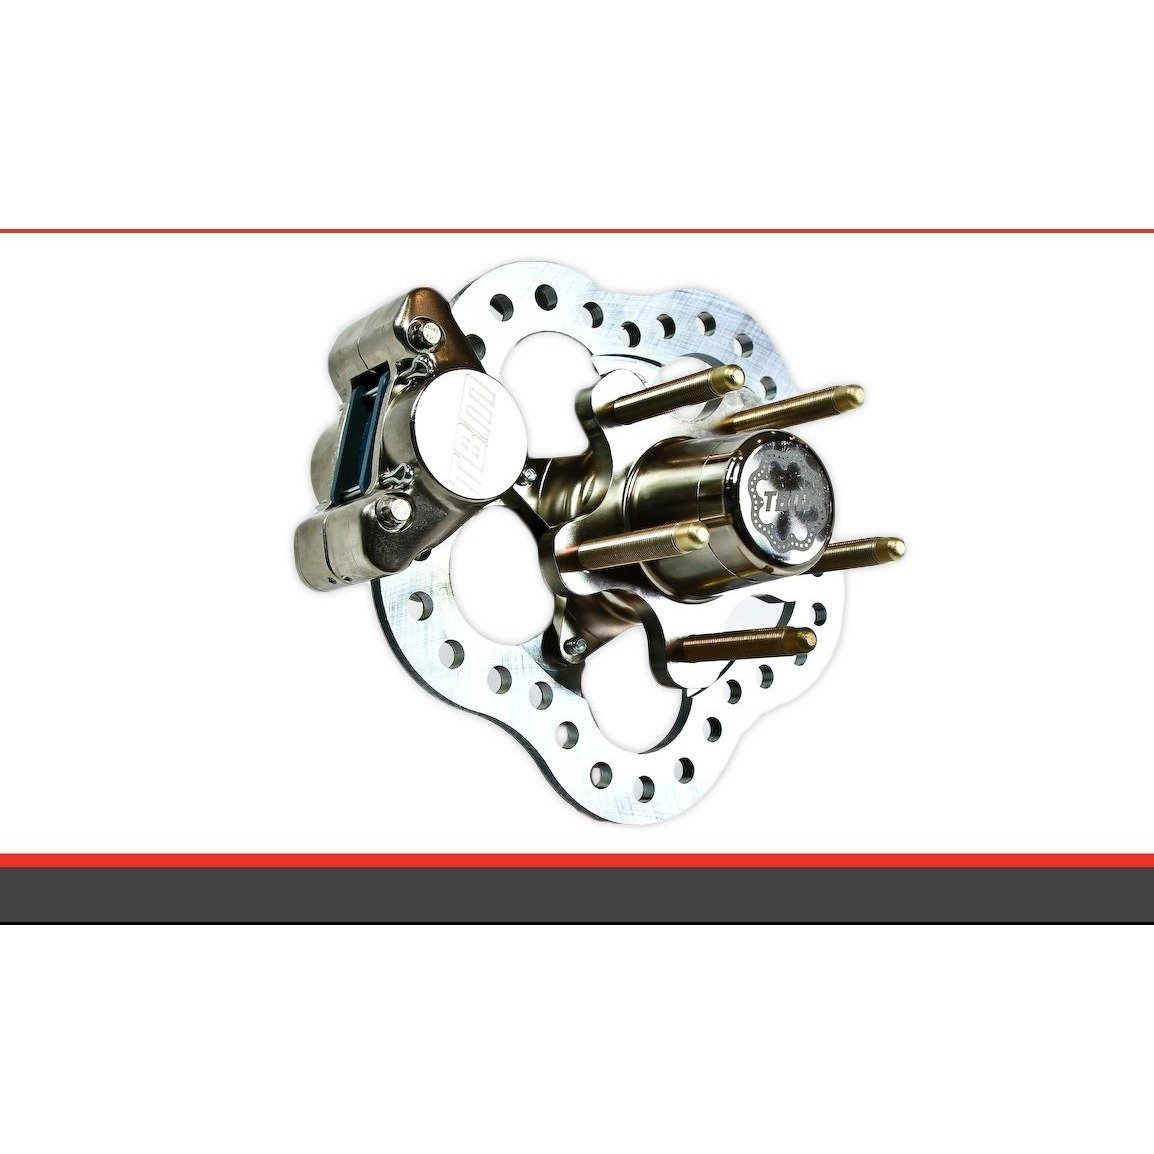 TBM Brakes 1964-67 Chevelle Front Race Brakes (Disc Spindle) 001-0201 - Motion Raceworks